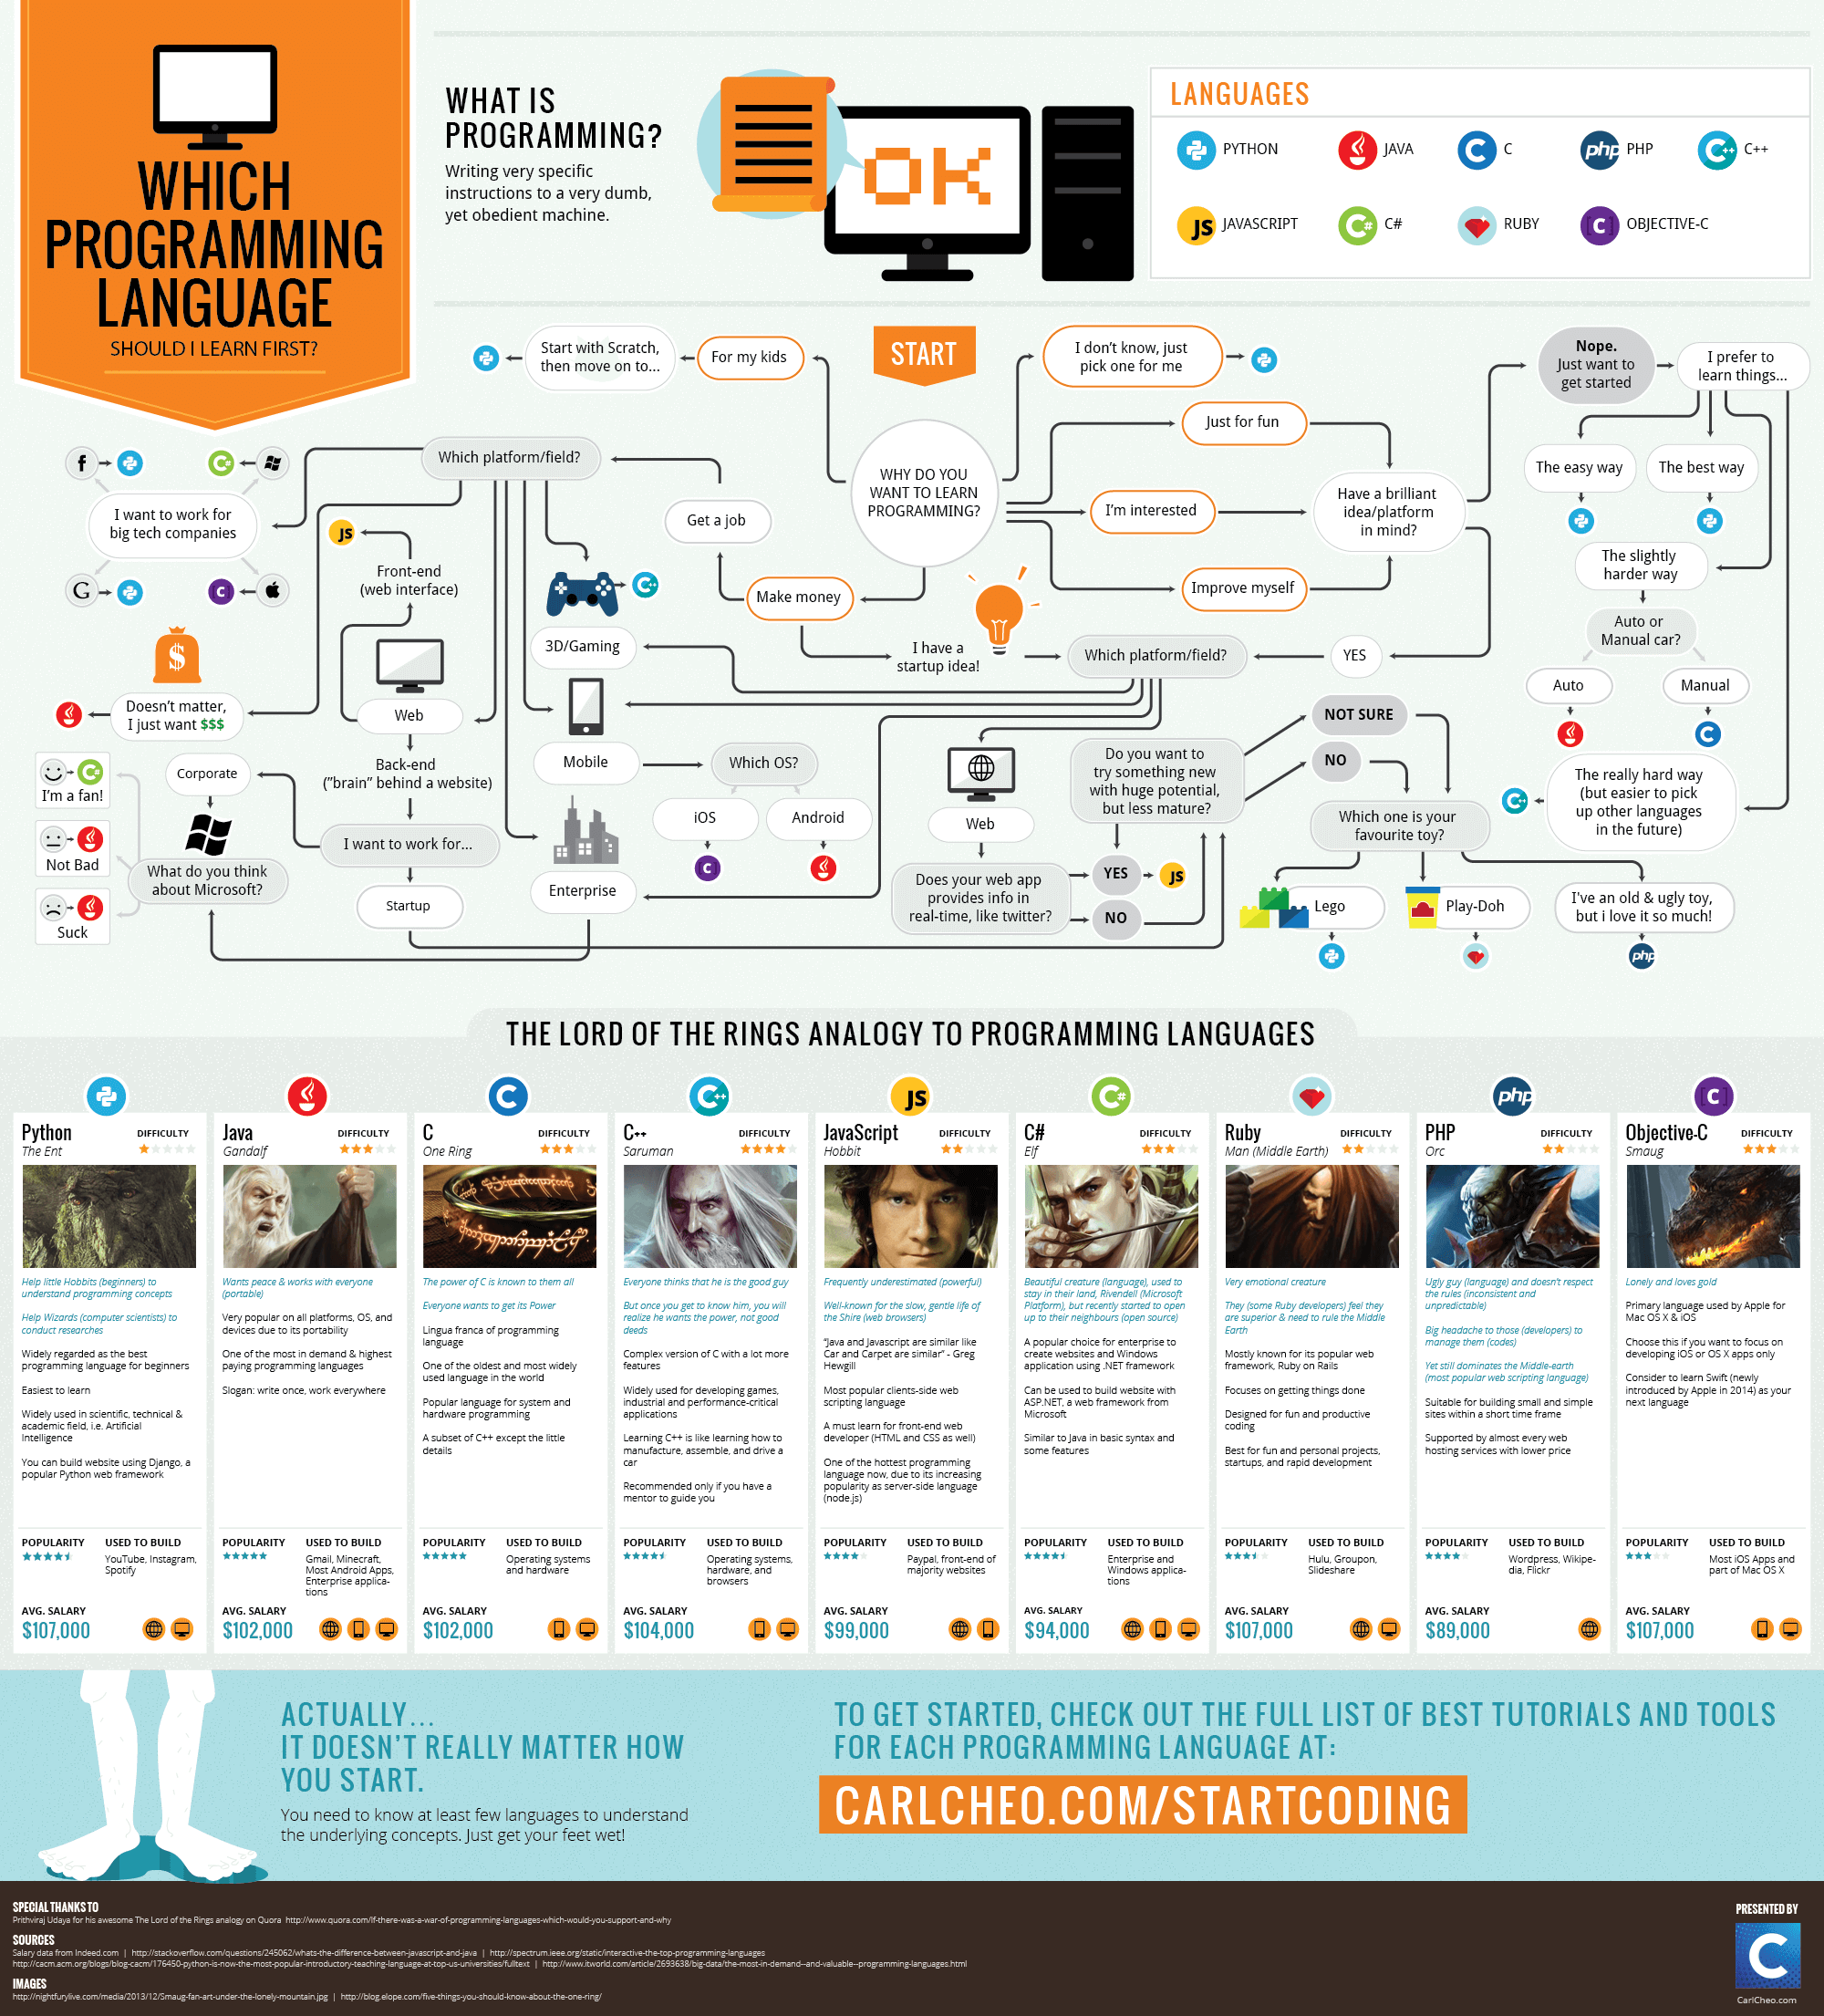 Infographic which programming language should i learn first